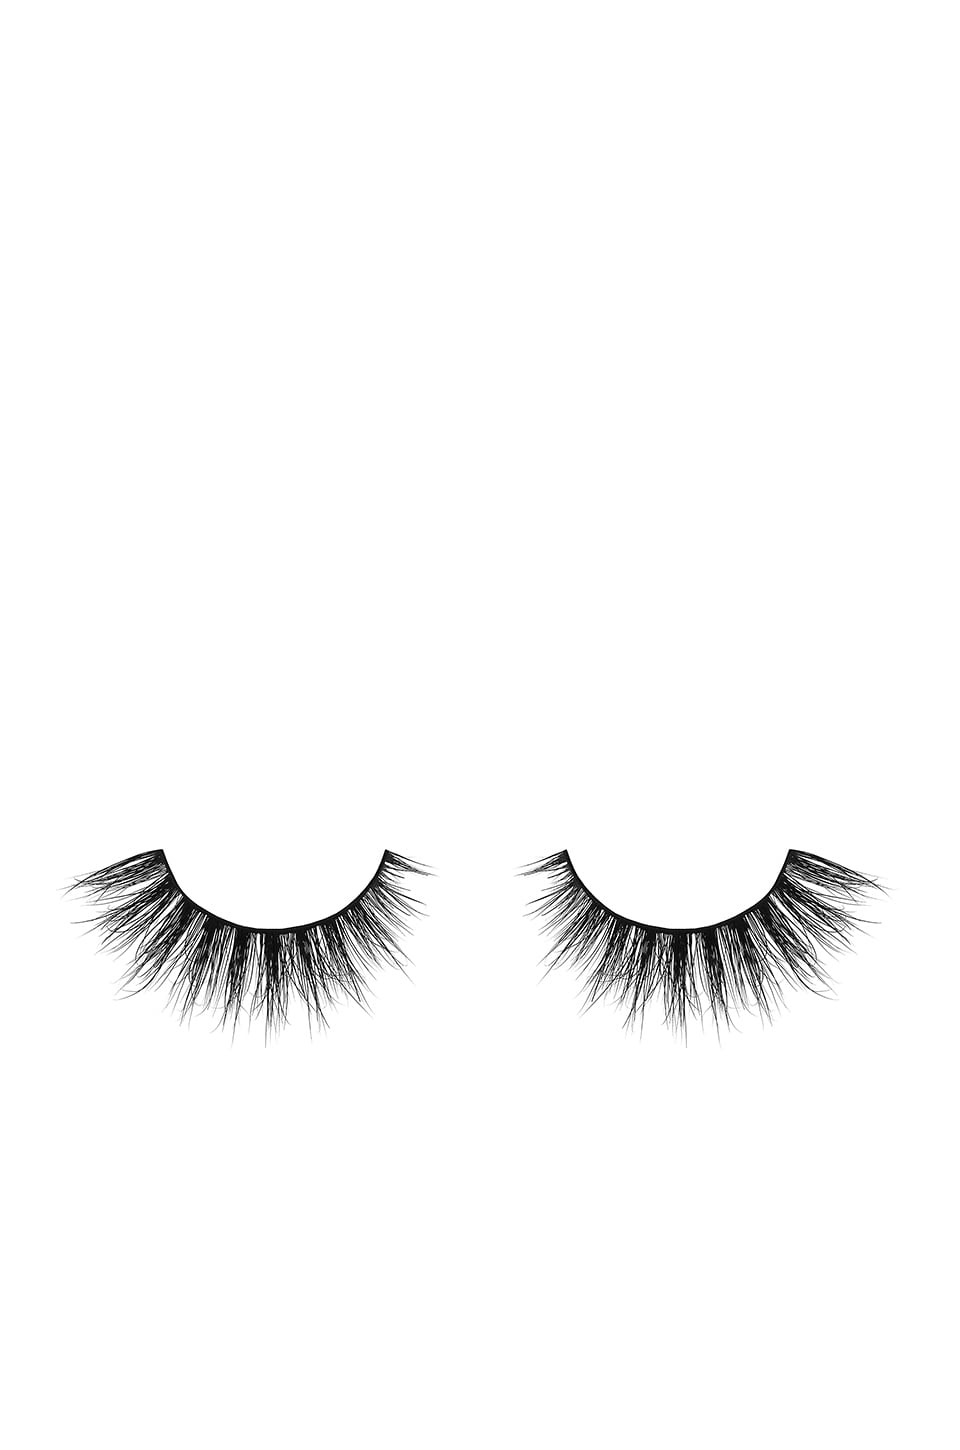 VELOUR LASHES WHAT THE FLUFF MINK LASHES